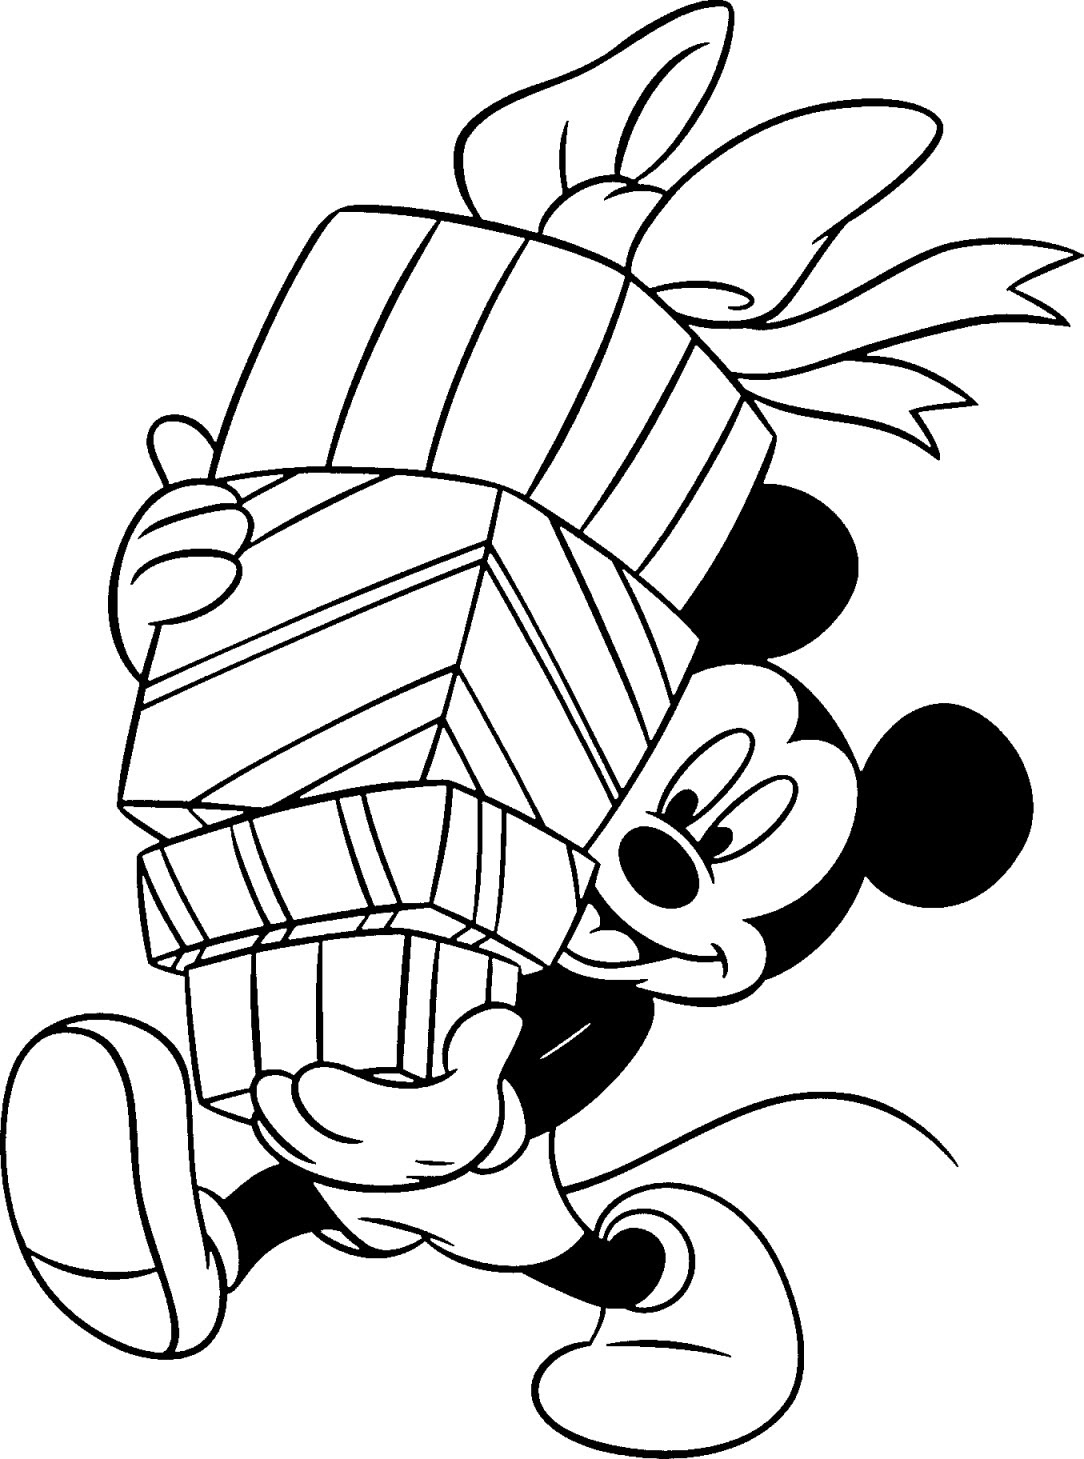 Christmas Coloring Pages (11) Coloring Kids - Coloring Kids